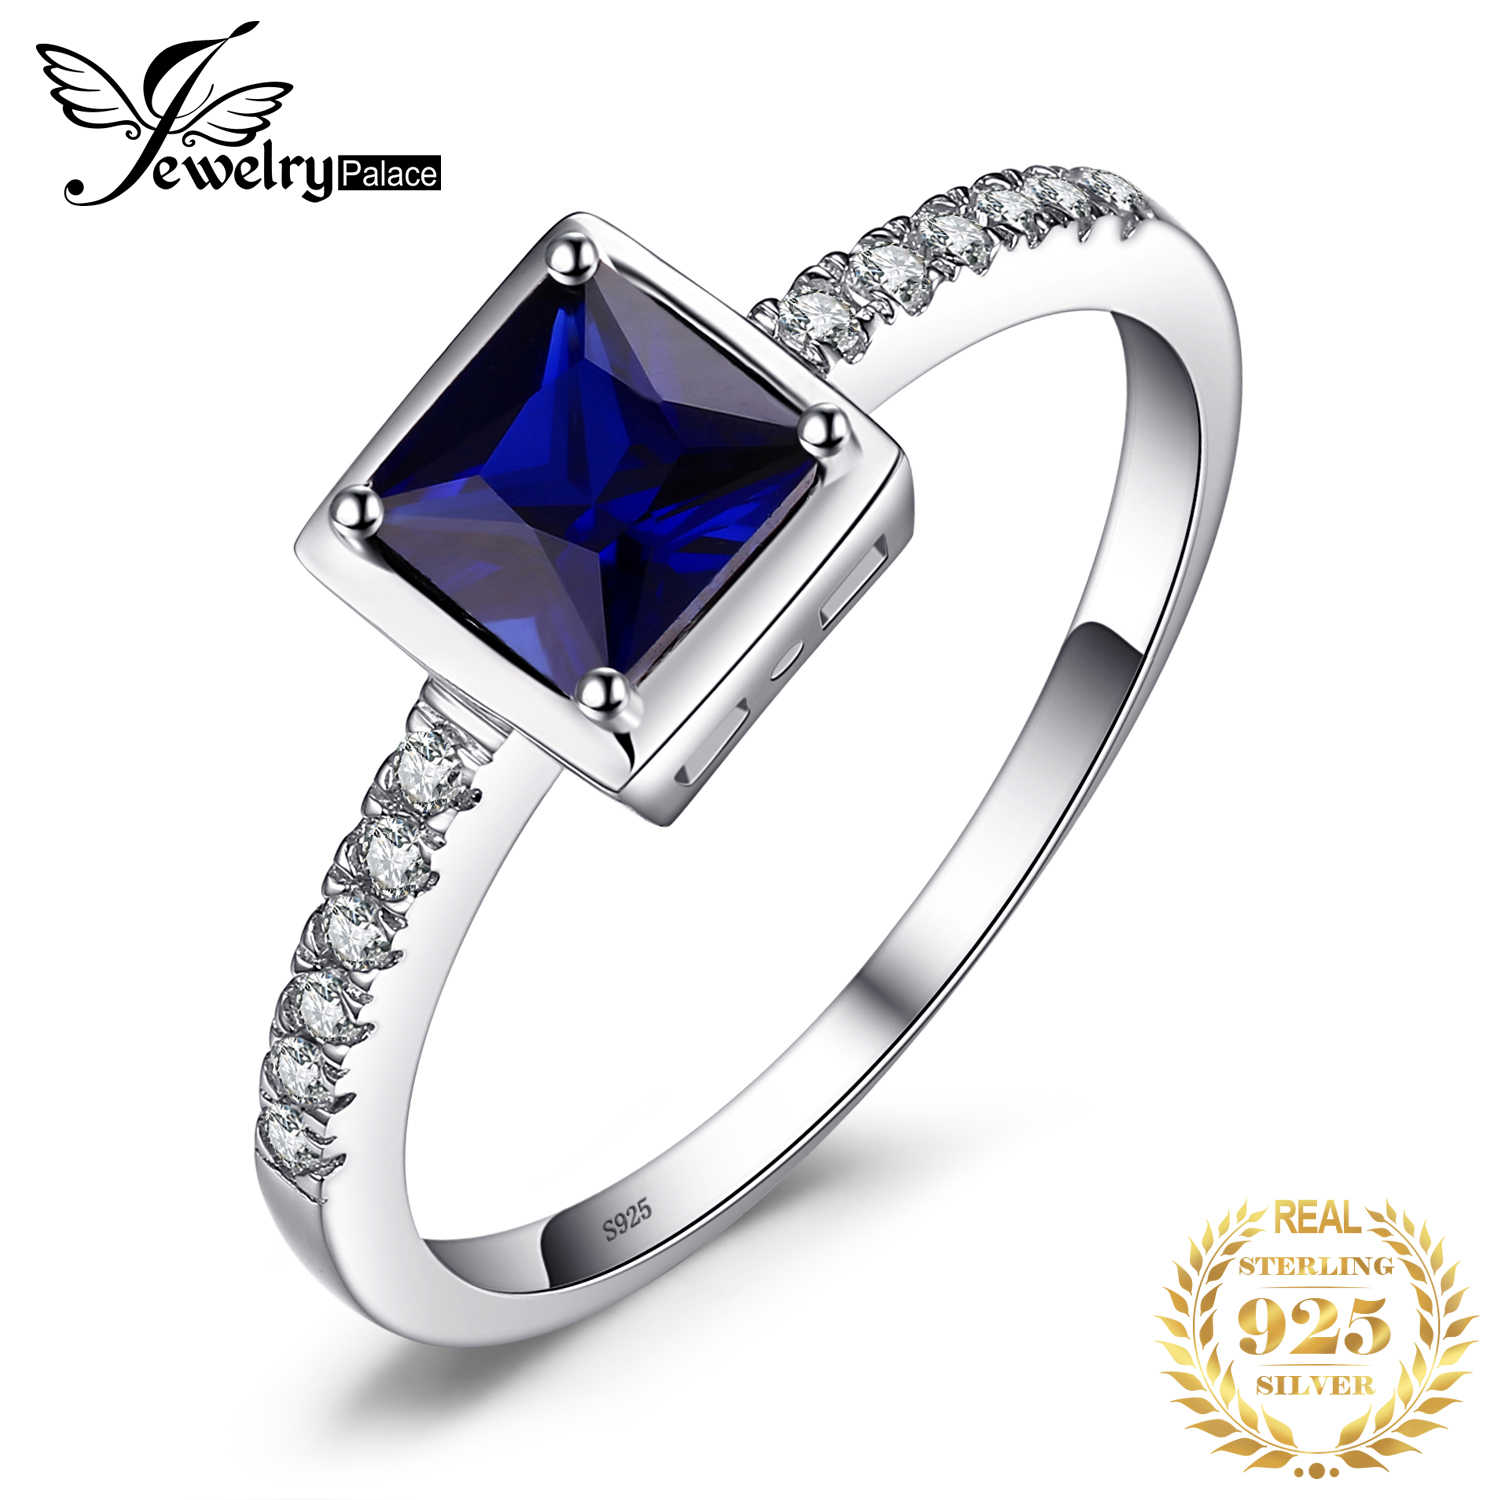 JewelryPalace Square 0.9ct Created Blue Sapphire Solitaire Ring 925 Sterling Silver Engagement Jewelry for Women Fashion Jewelry